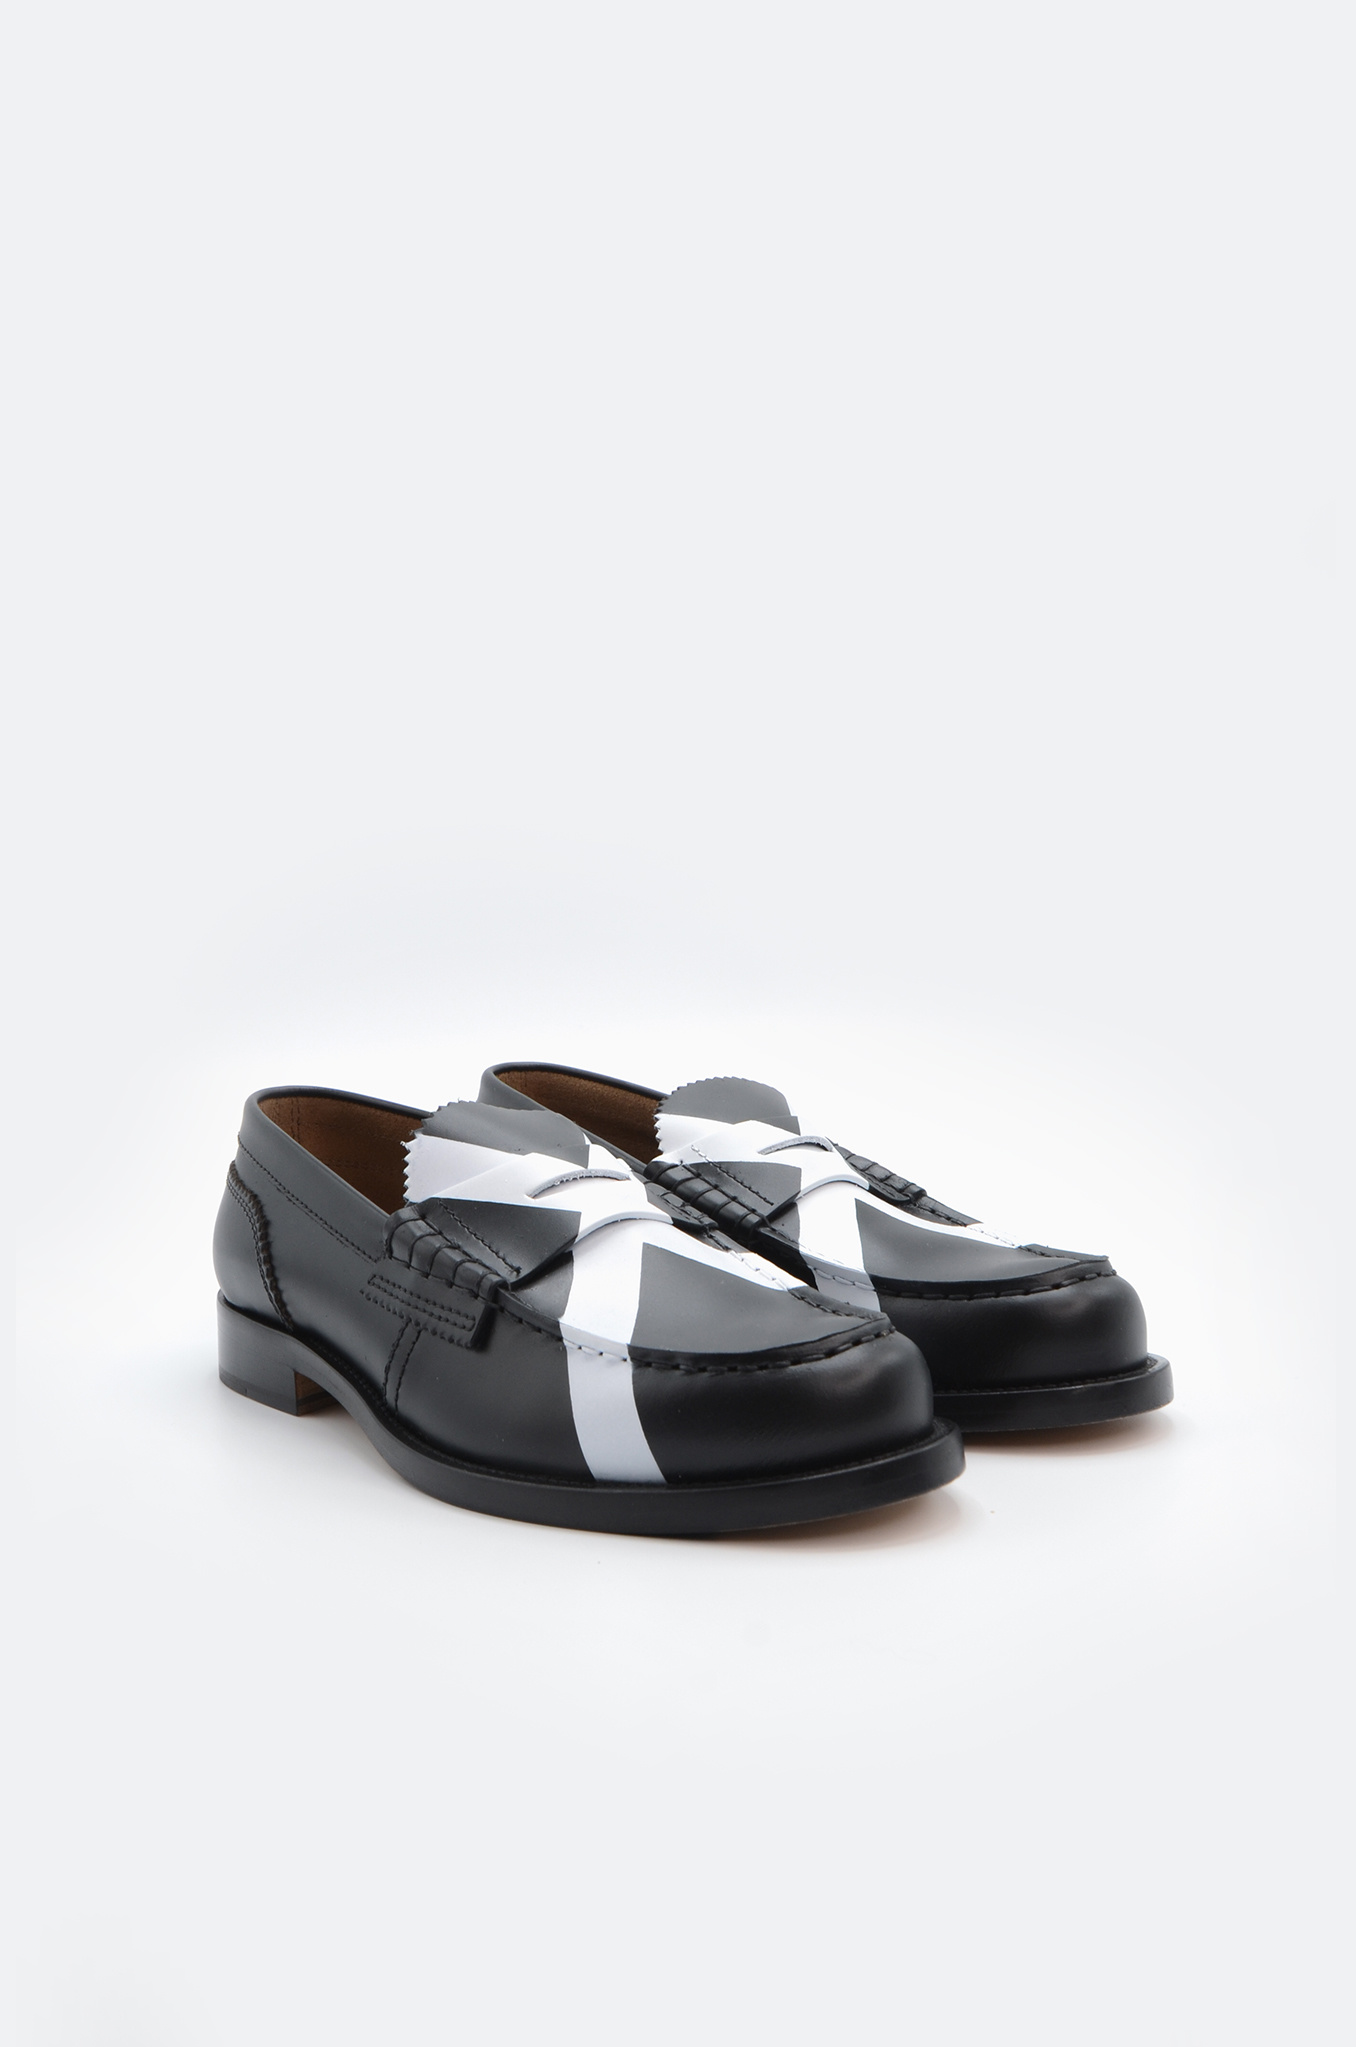 PENNY LOAFER IN BLACK X WHITE-2